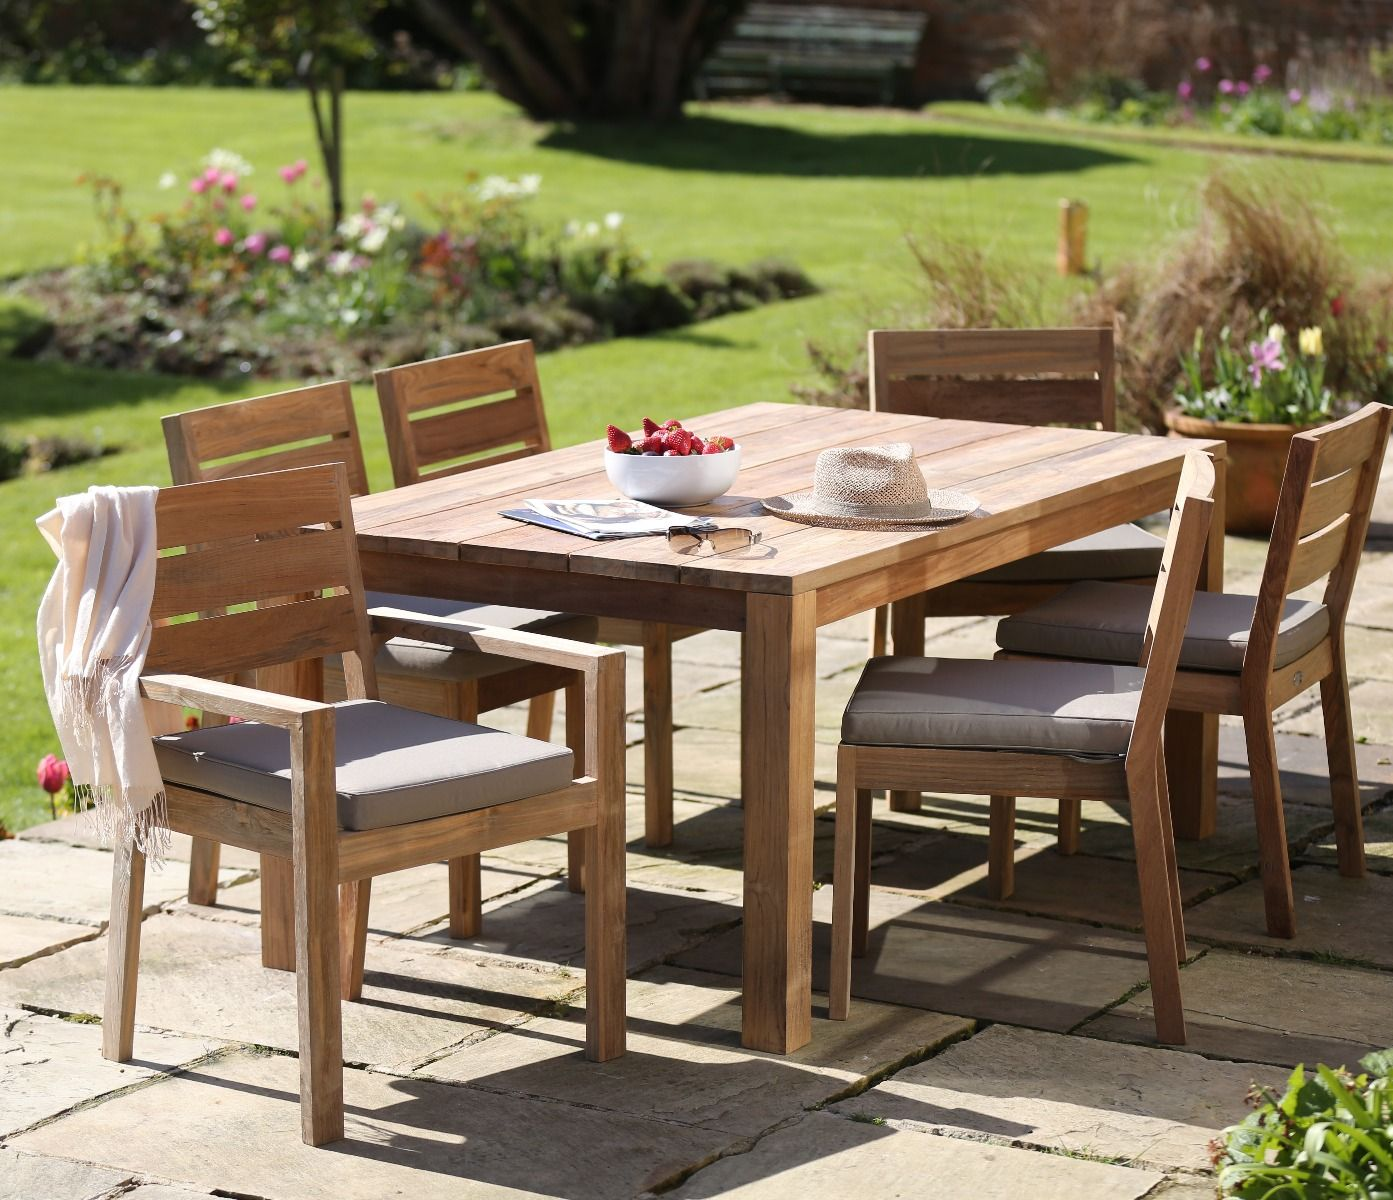 Outdoor Patio Furniture Under 200: Tuscan Reclaimed Outdoor Table 220cm